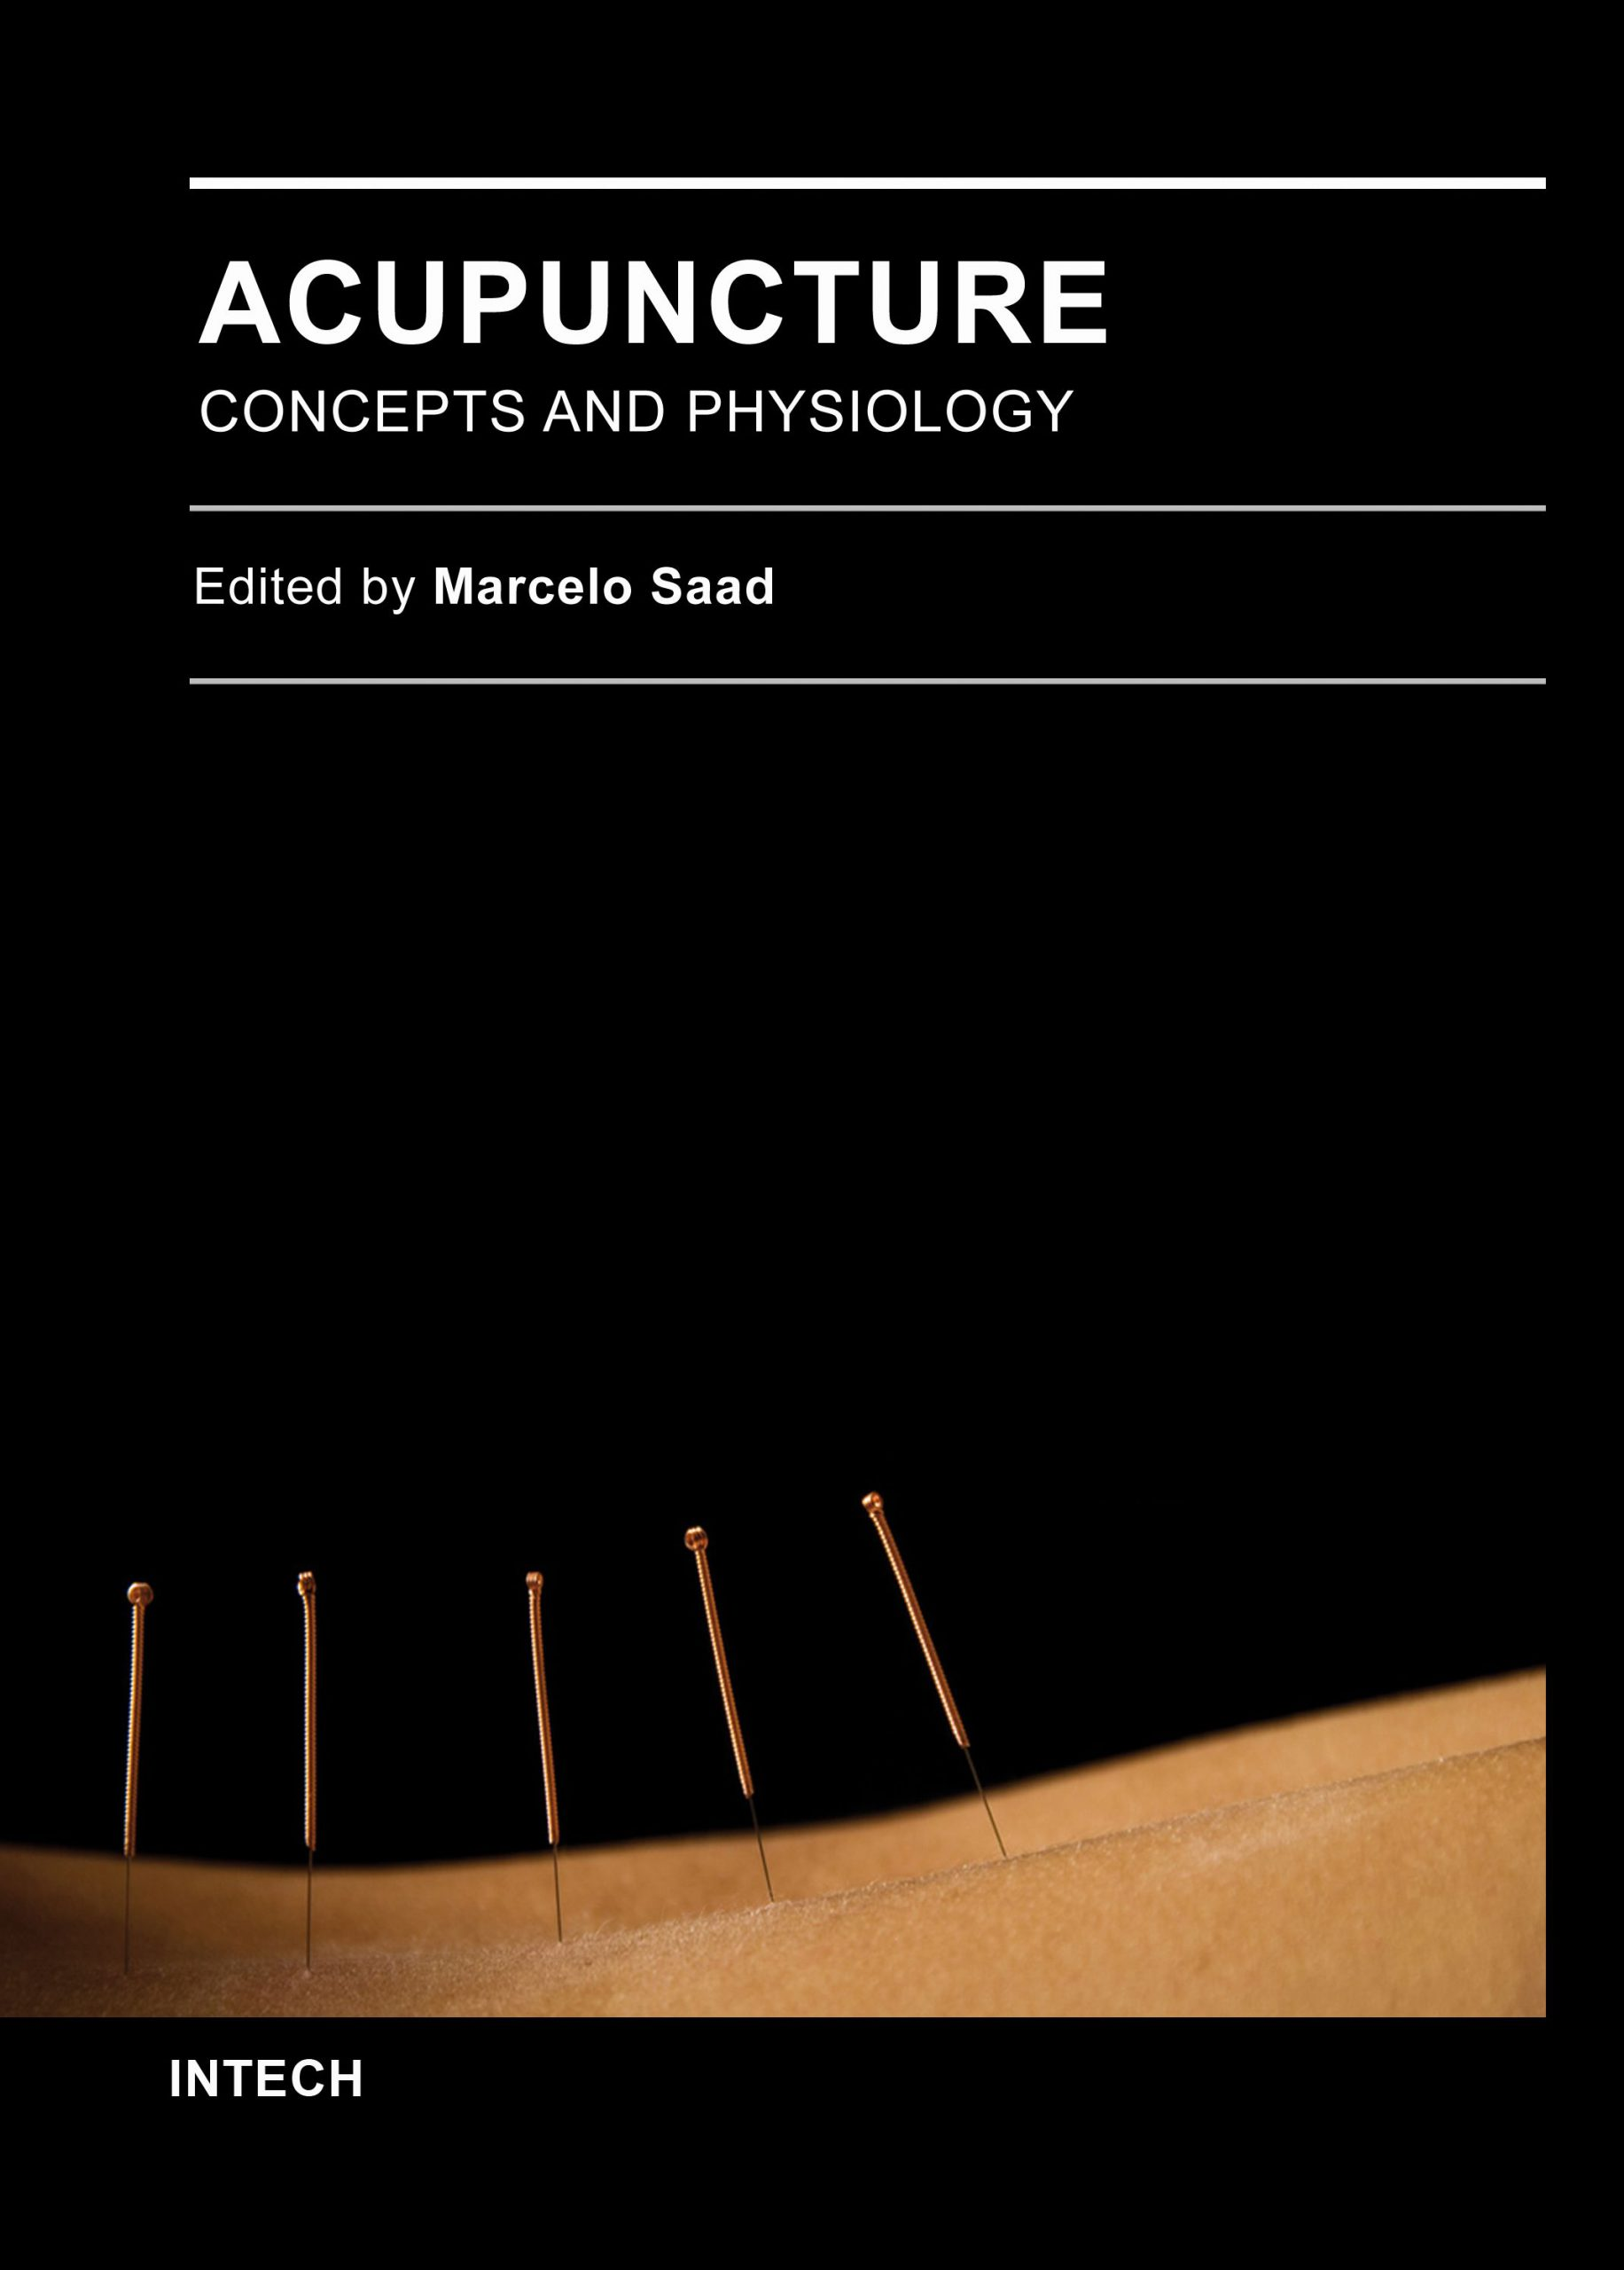 ۵۶۸۸_acupuncture-concepts-physiology